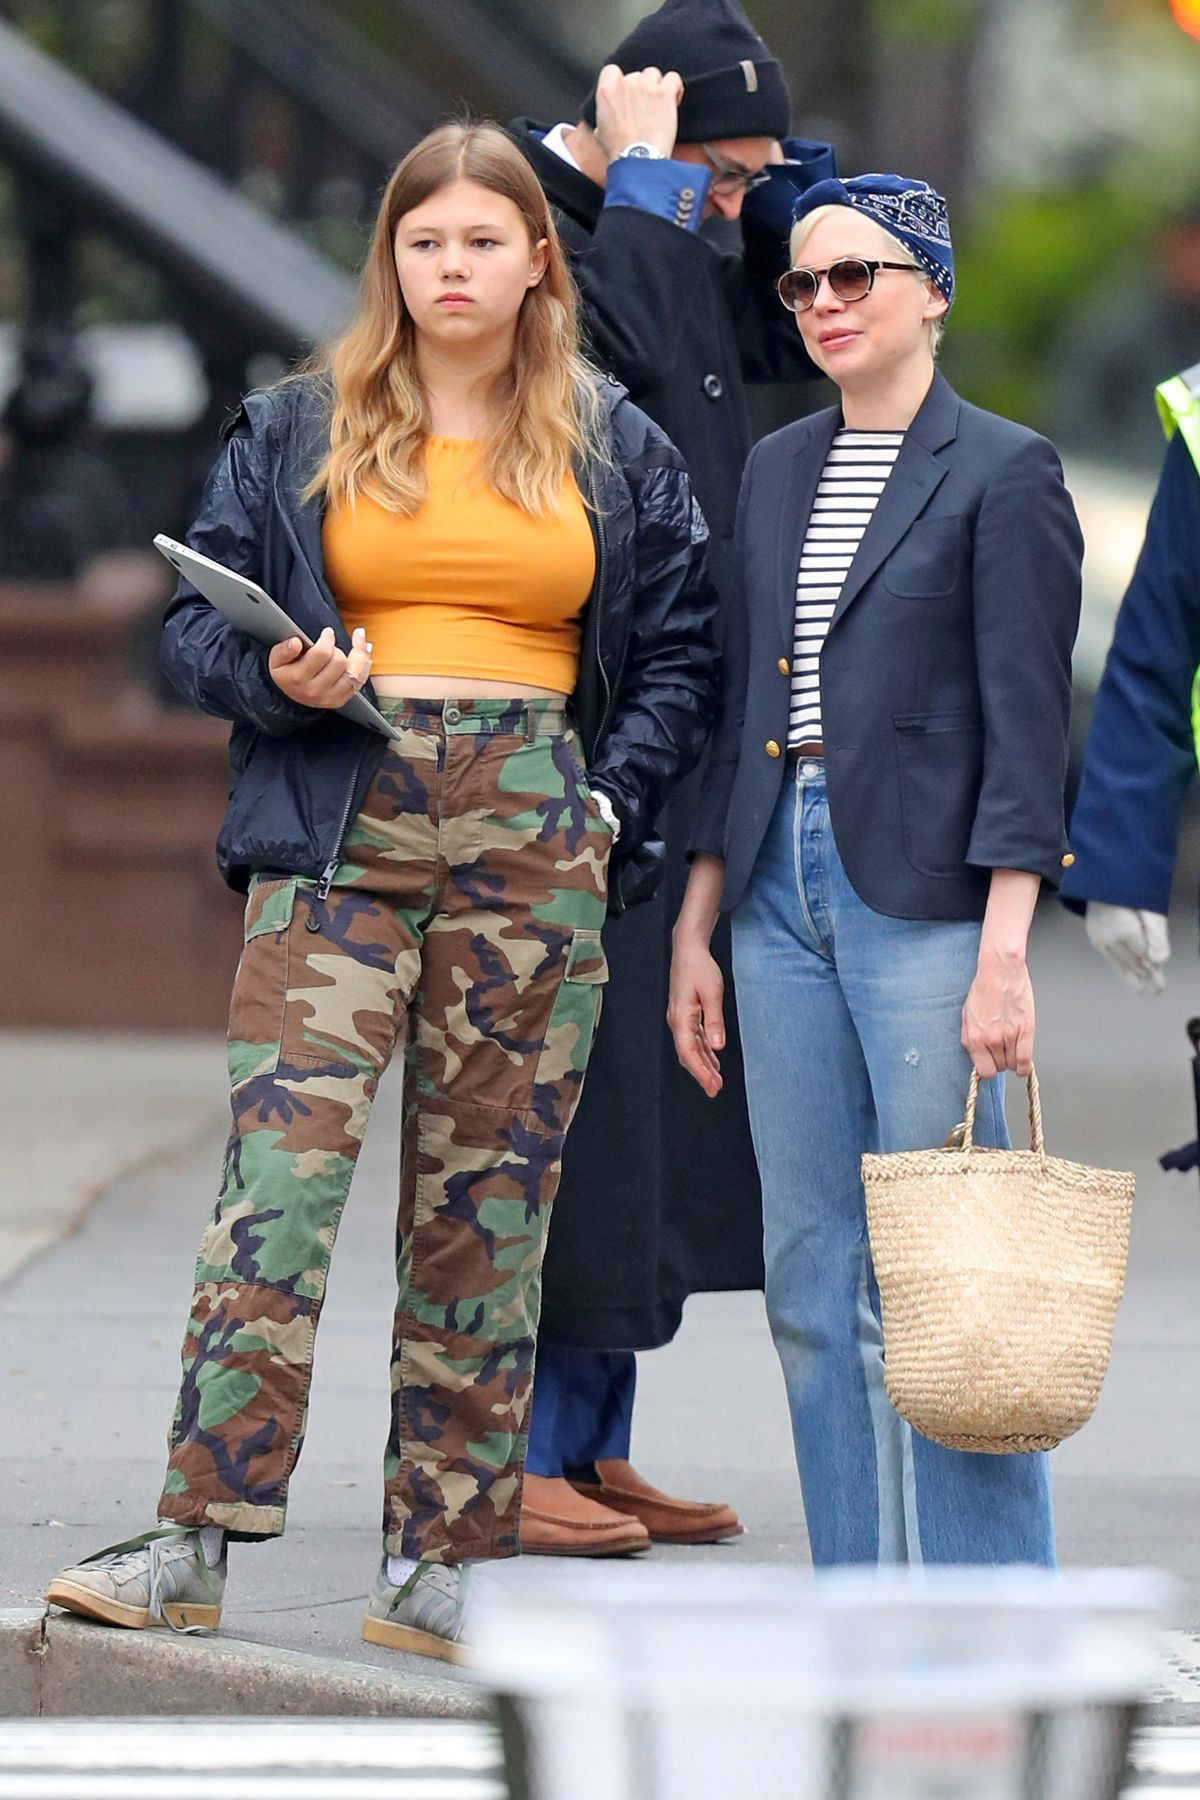 Michelle Williams Steps out with her daughter in NYC - Celebzz